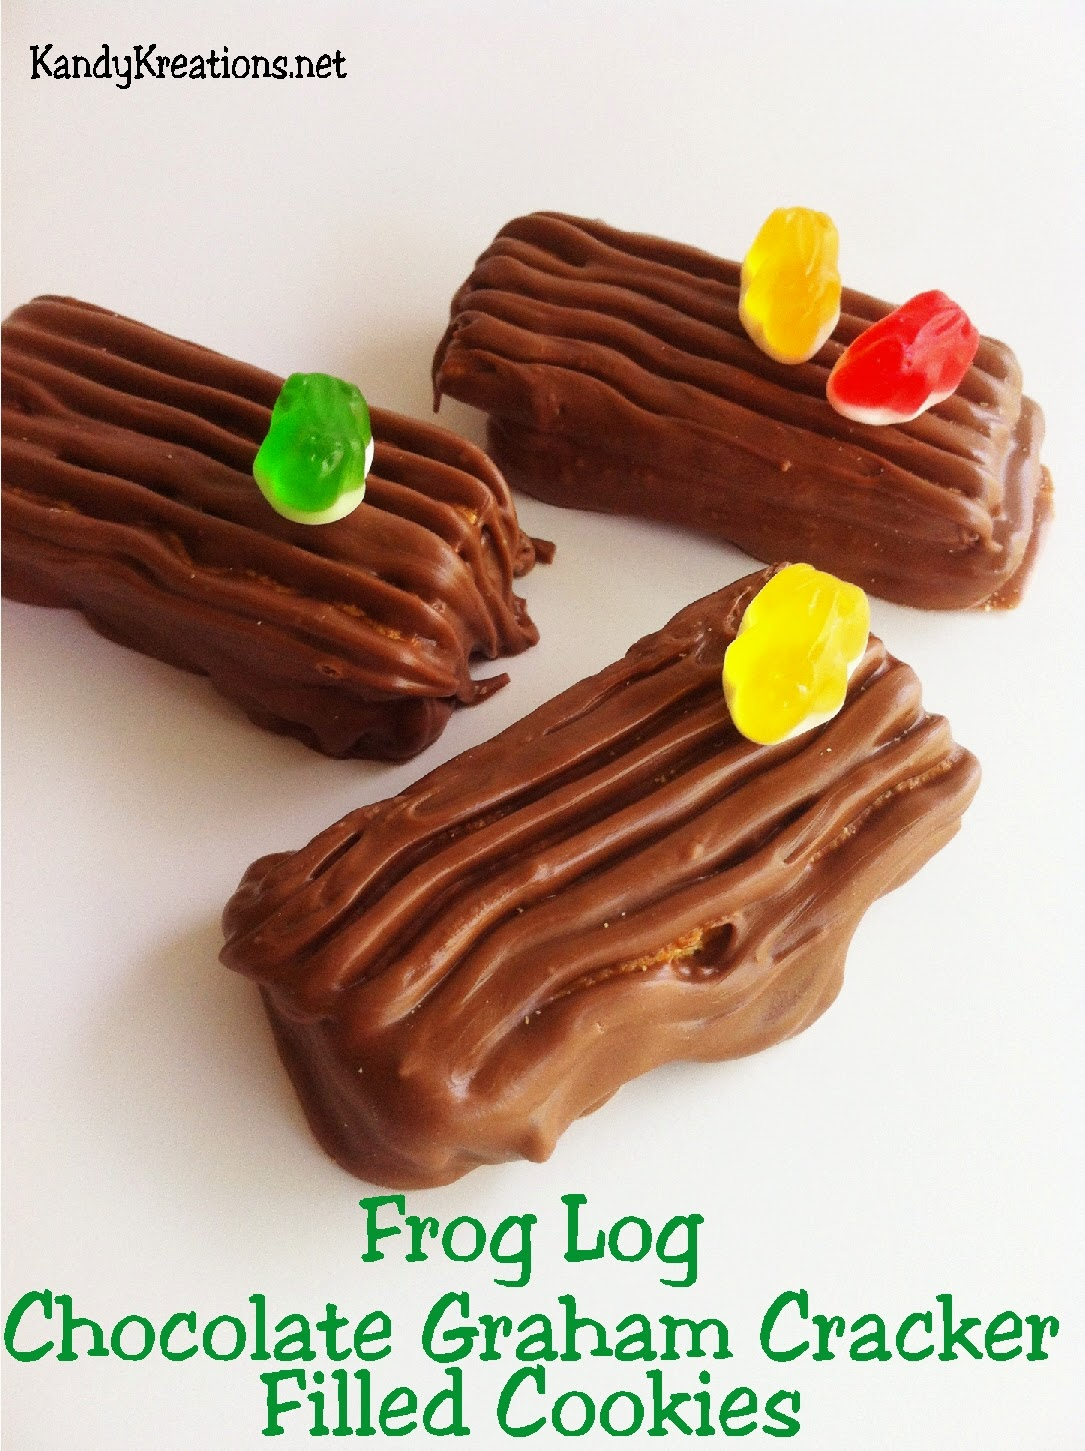 Enjoy a rich, yummy chocolate covered cookie that's fun to make and eat. This cookie is perfect for your video game party as the Frogger hops across the logs on the party dessert table.